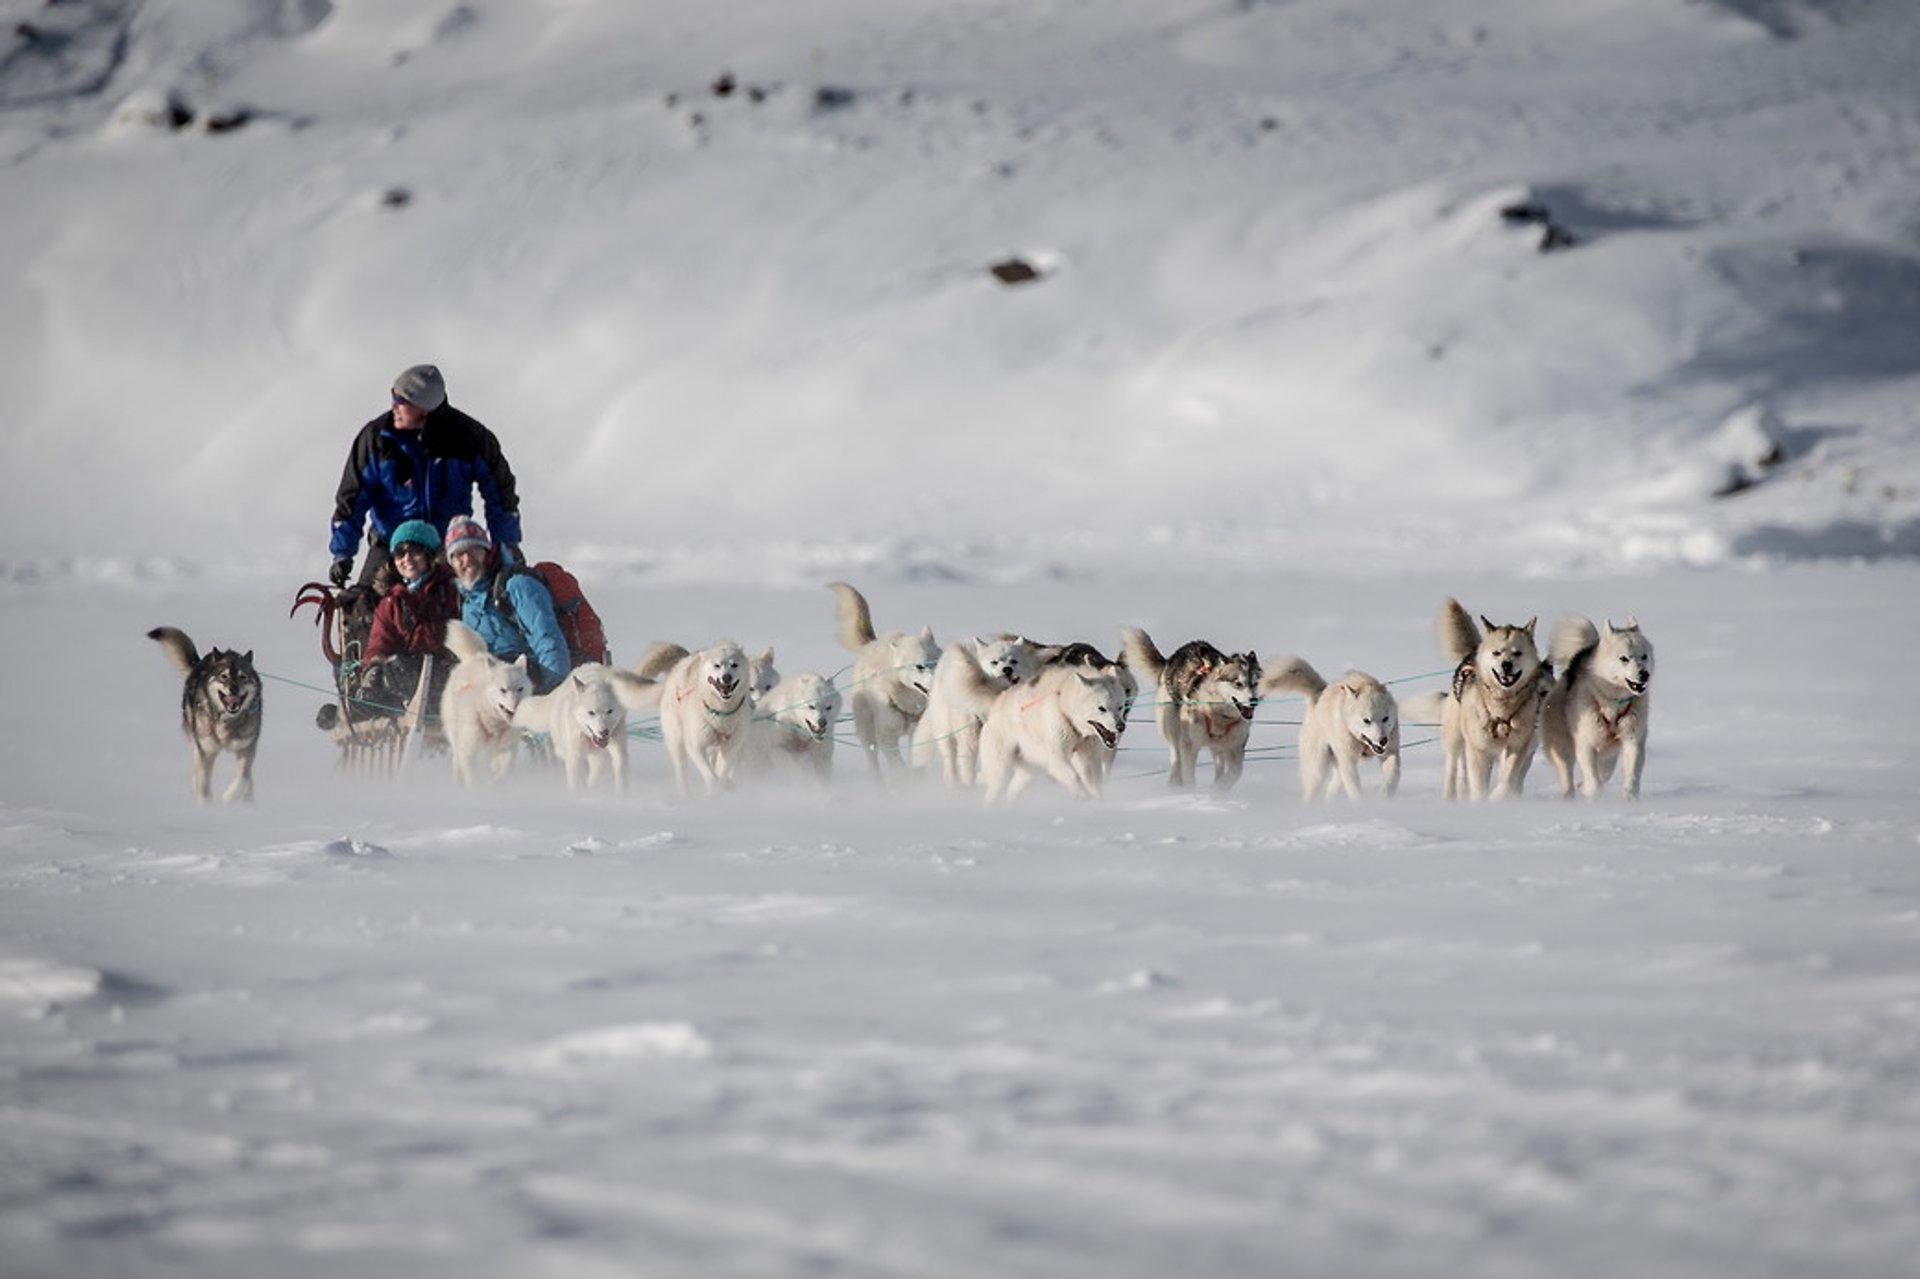 Dog Sledding in Greenland 2020 - Best Time